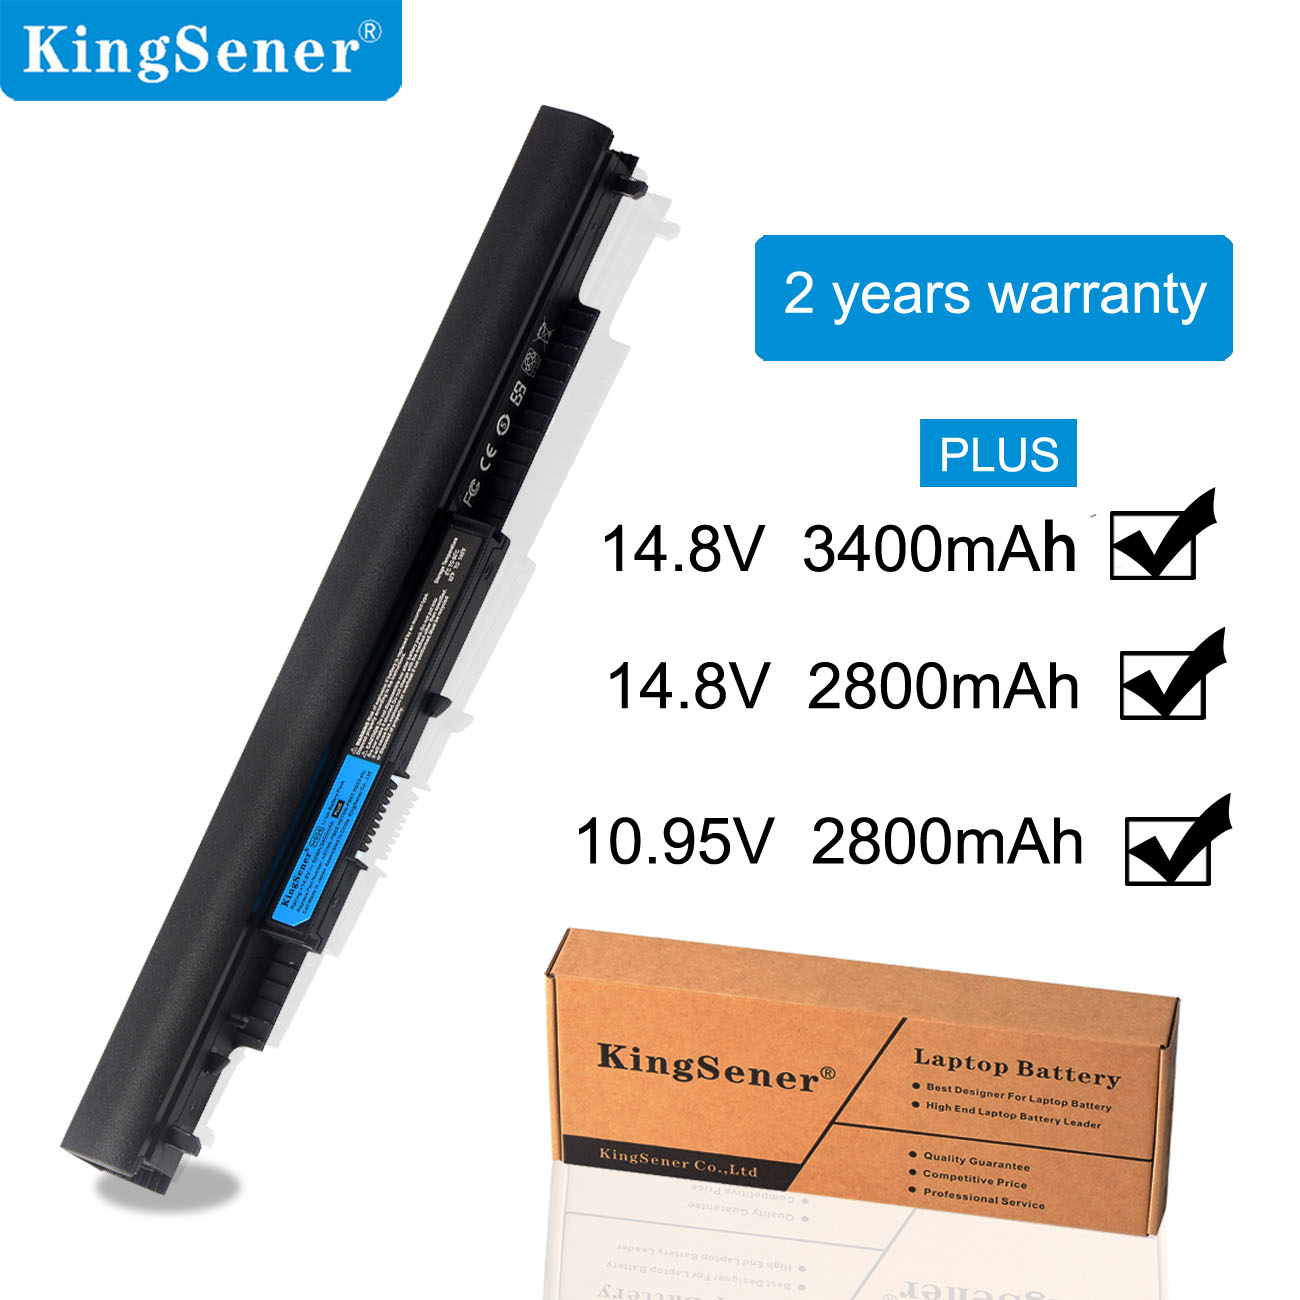 KingSener New HS04 Laptop Battery For HP Pavilion 14-ac0XX 15-ac121dx 255 245 250 G4 240 HSTNN-LB6U HSTNN-PB6T/PB6S  HSTNN-LB6V